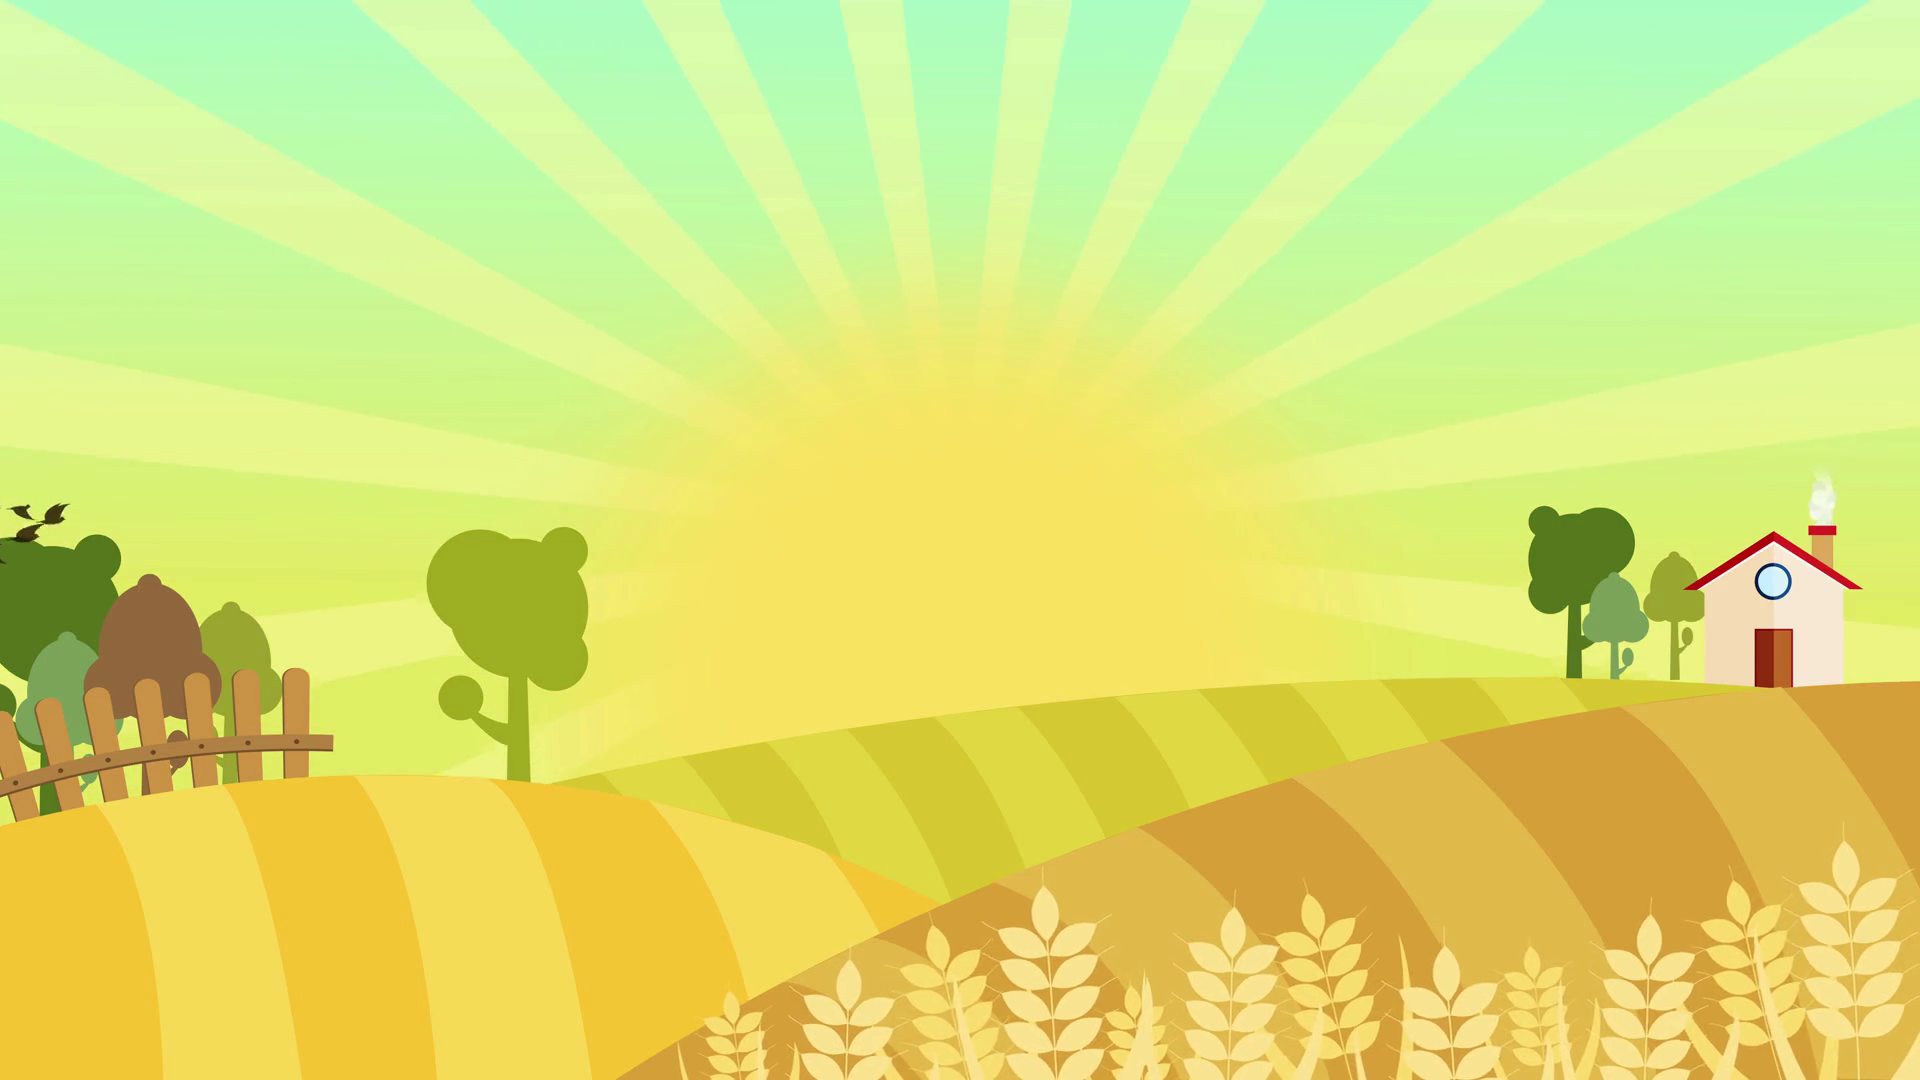 Farm Background Png - Barn Background PNG Transparent Barn Background.PNG Images. | PlusPNG